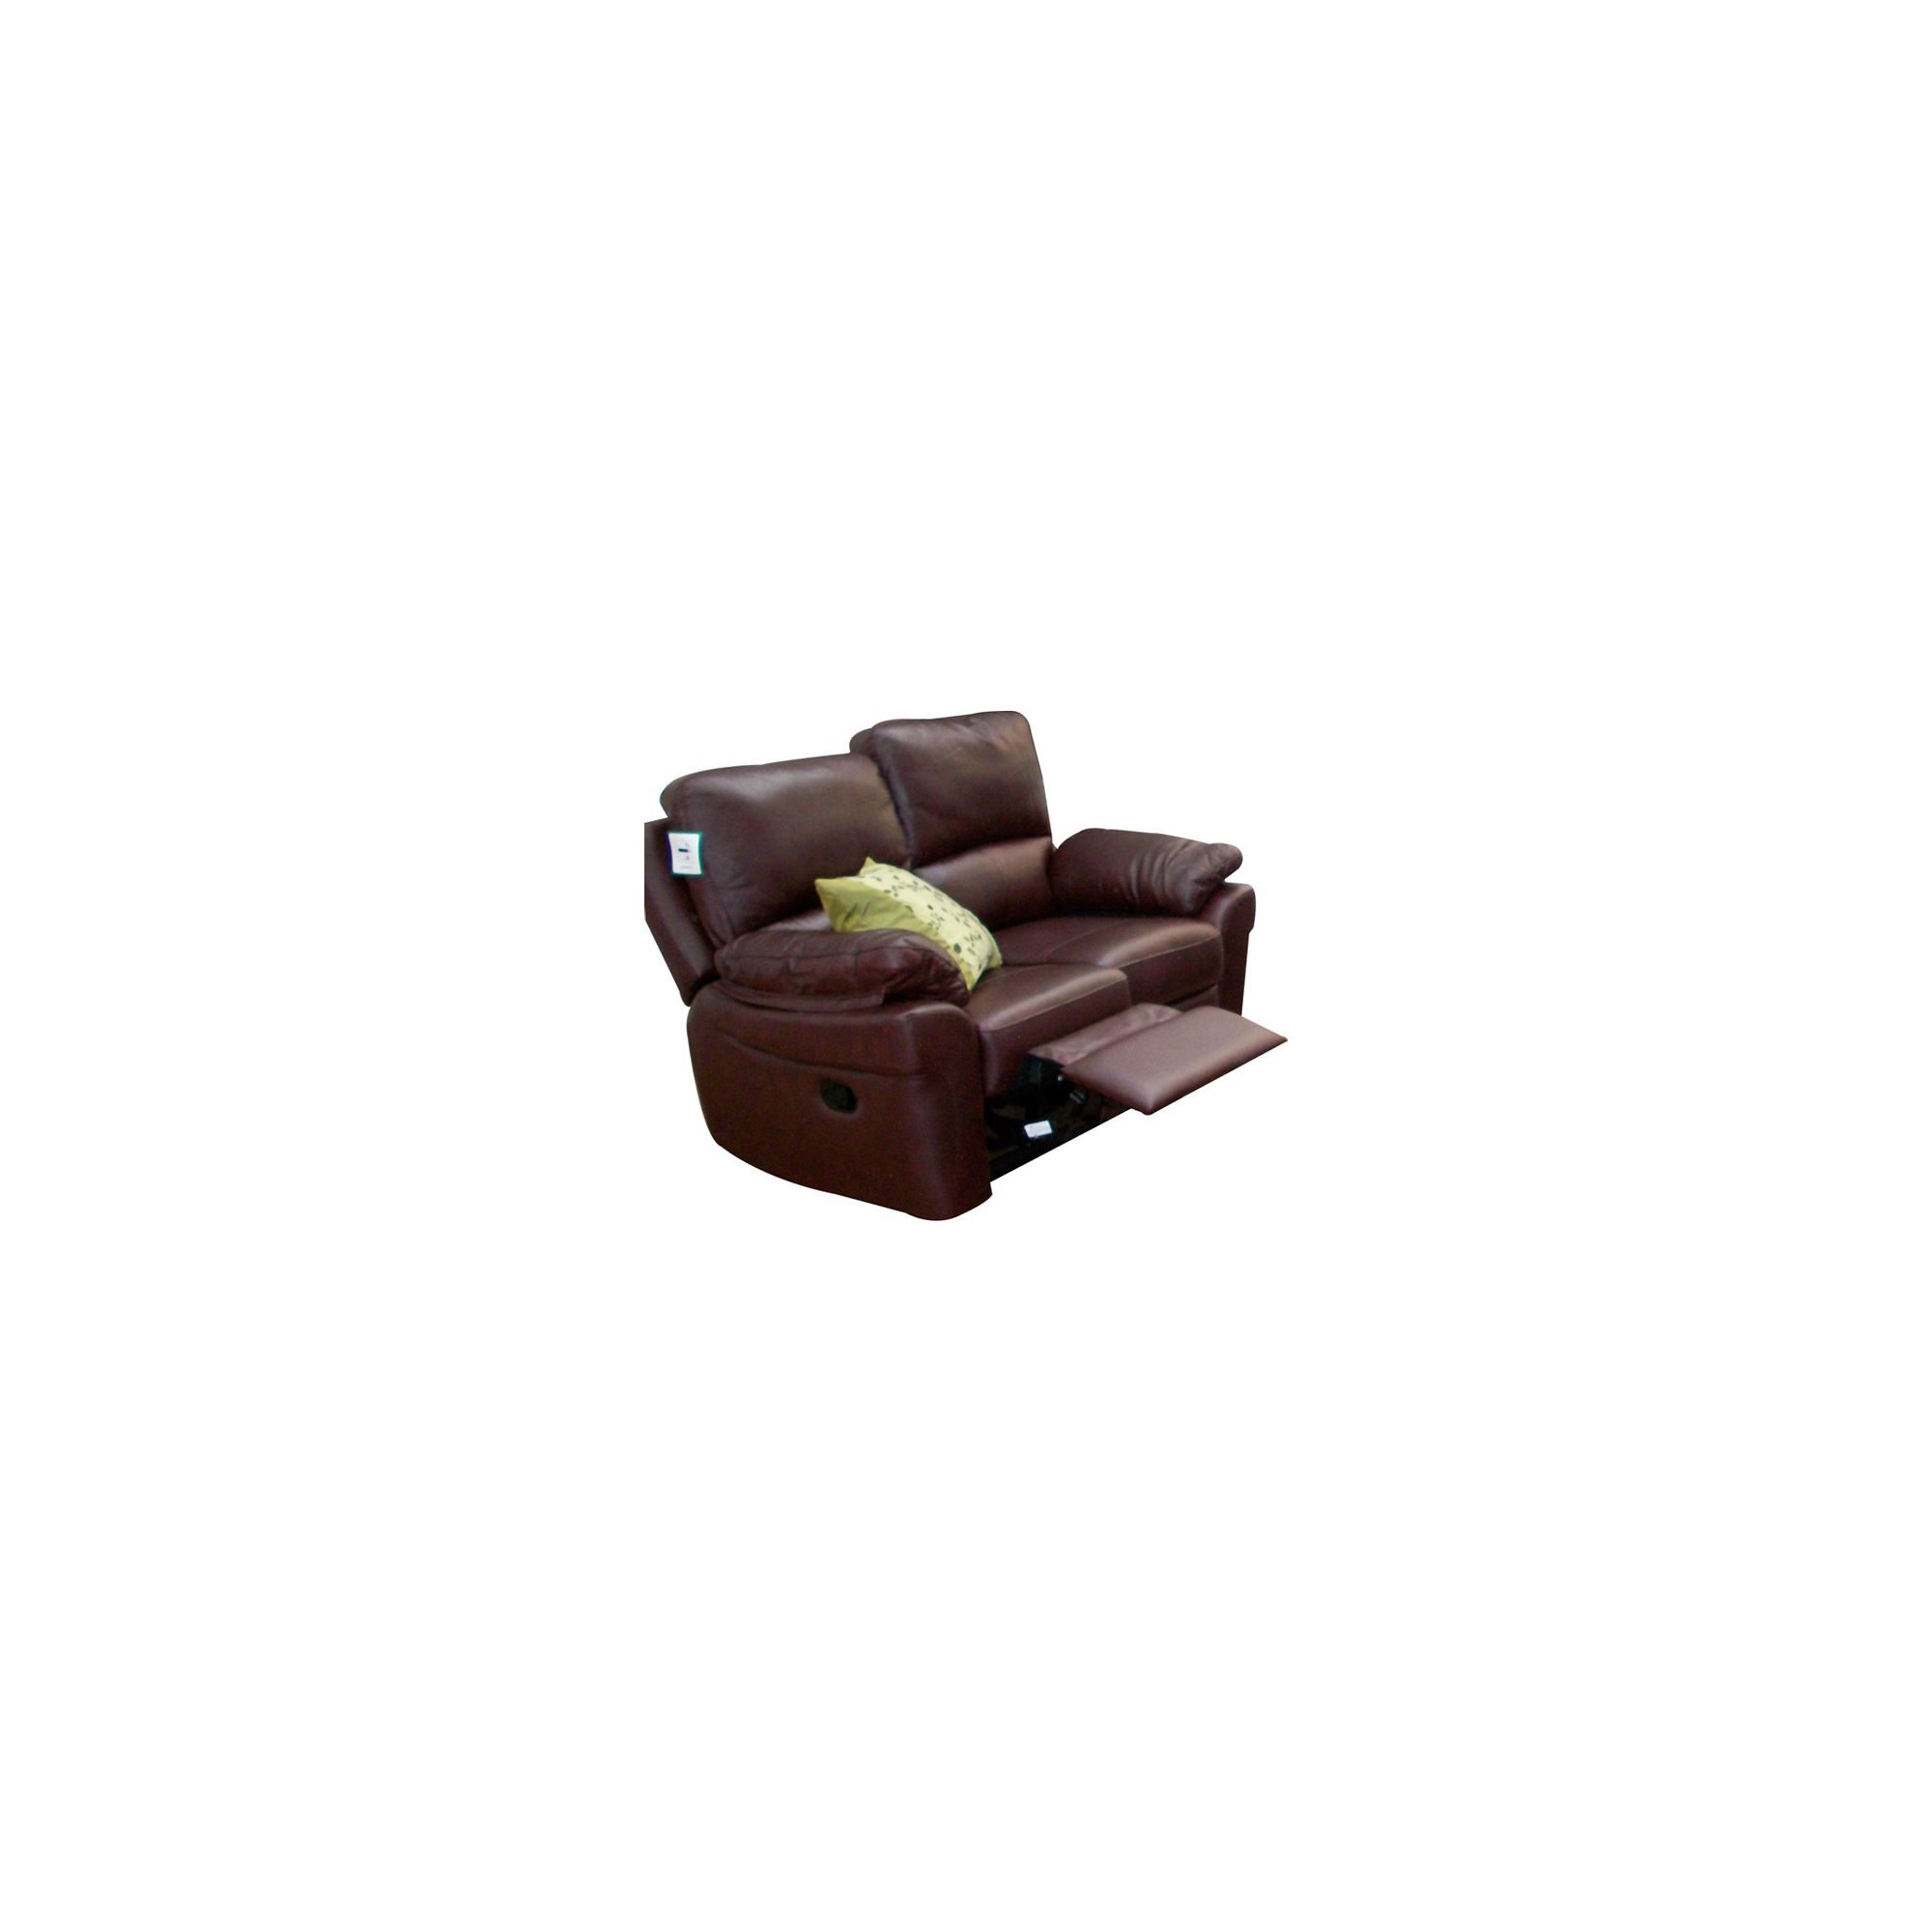 Furniture Link Monzano Two Seat Reclining Sofa in Chestnut - Ivory at Tesco Direct